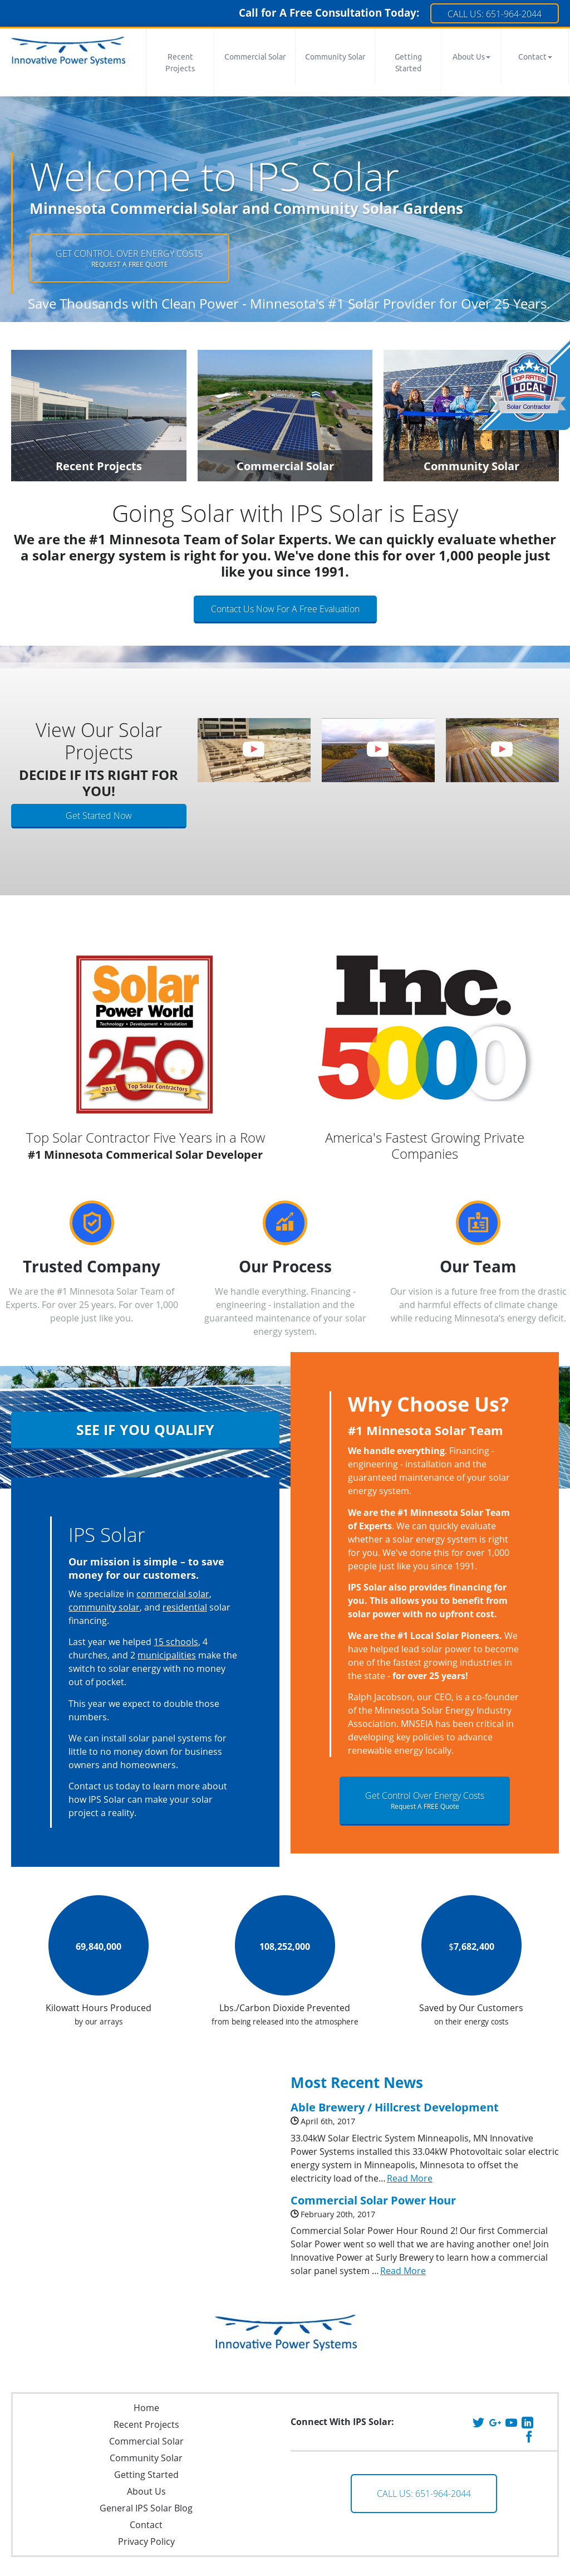 Ips Solar Competitors, Revenue and Employees - Owler Company